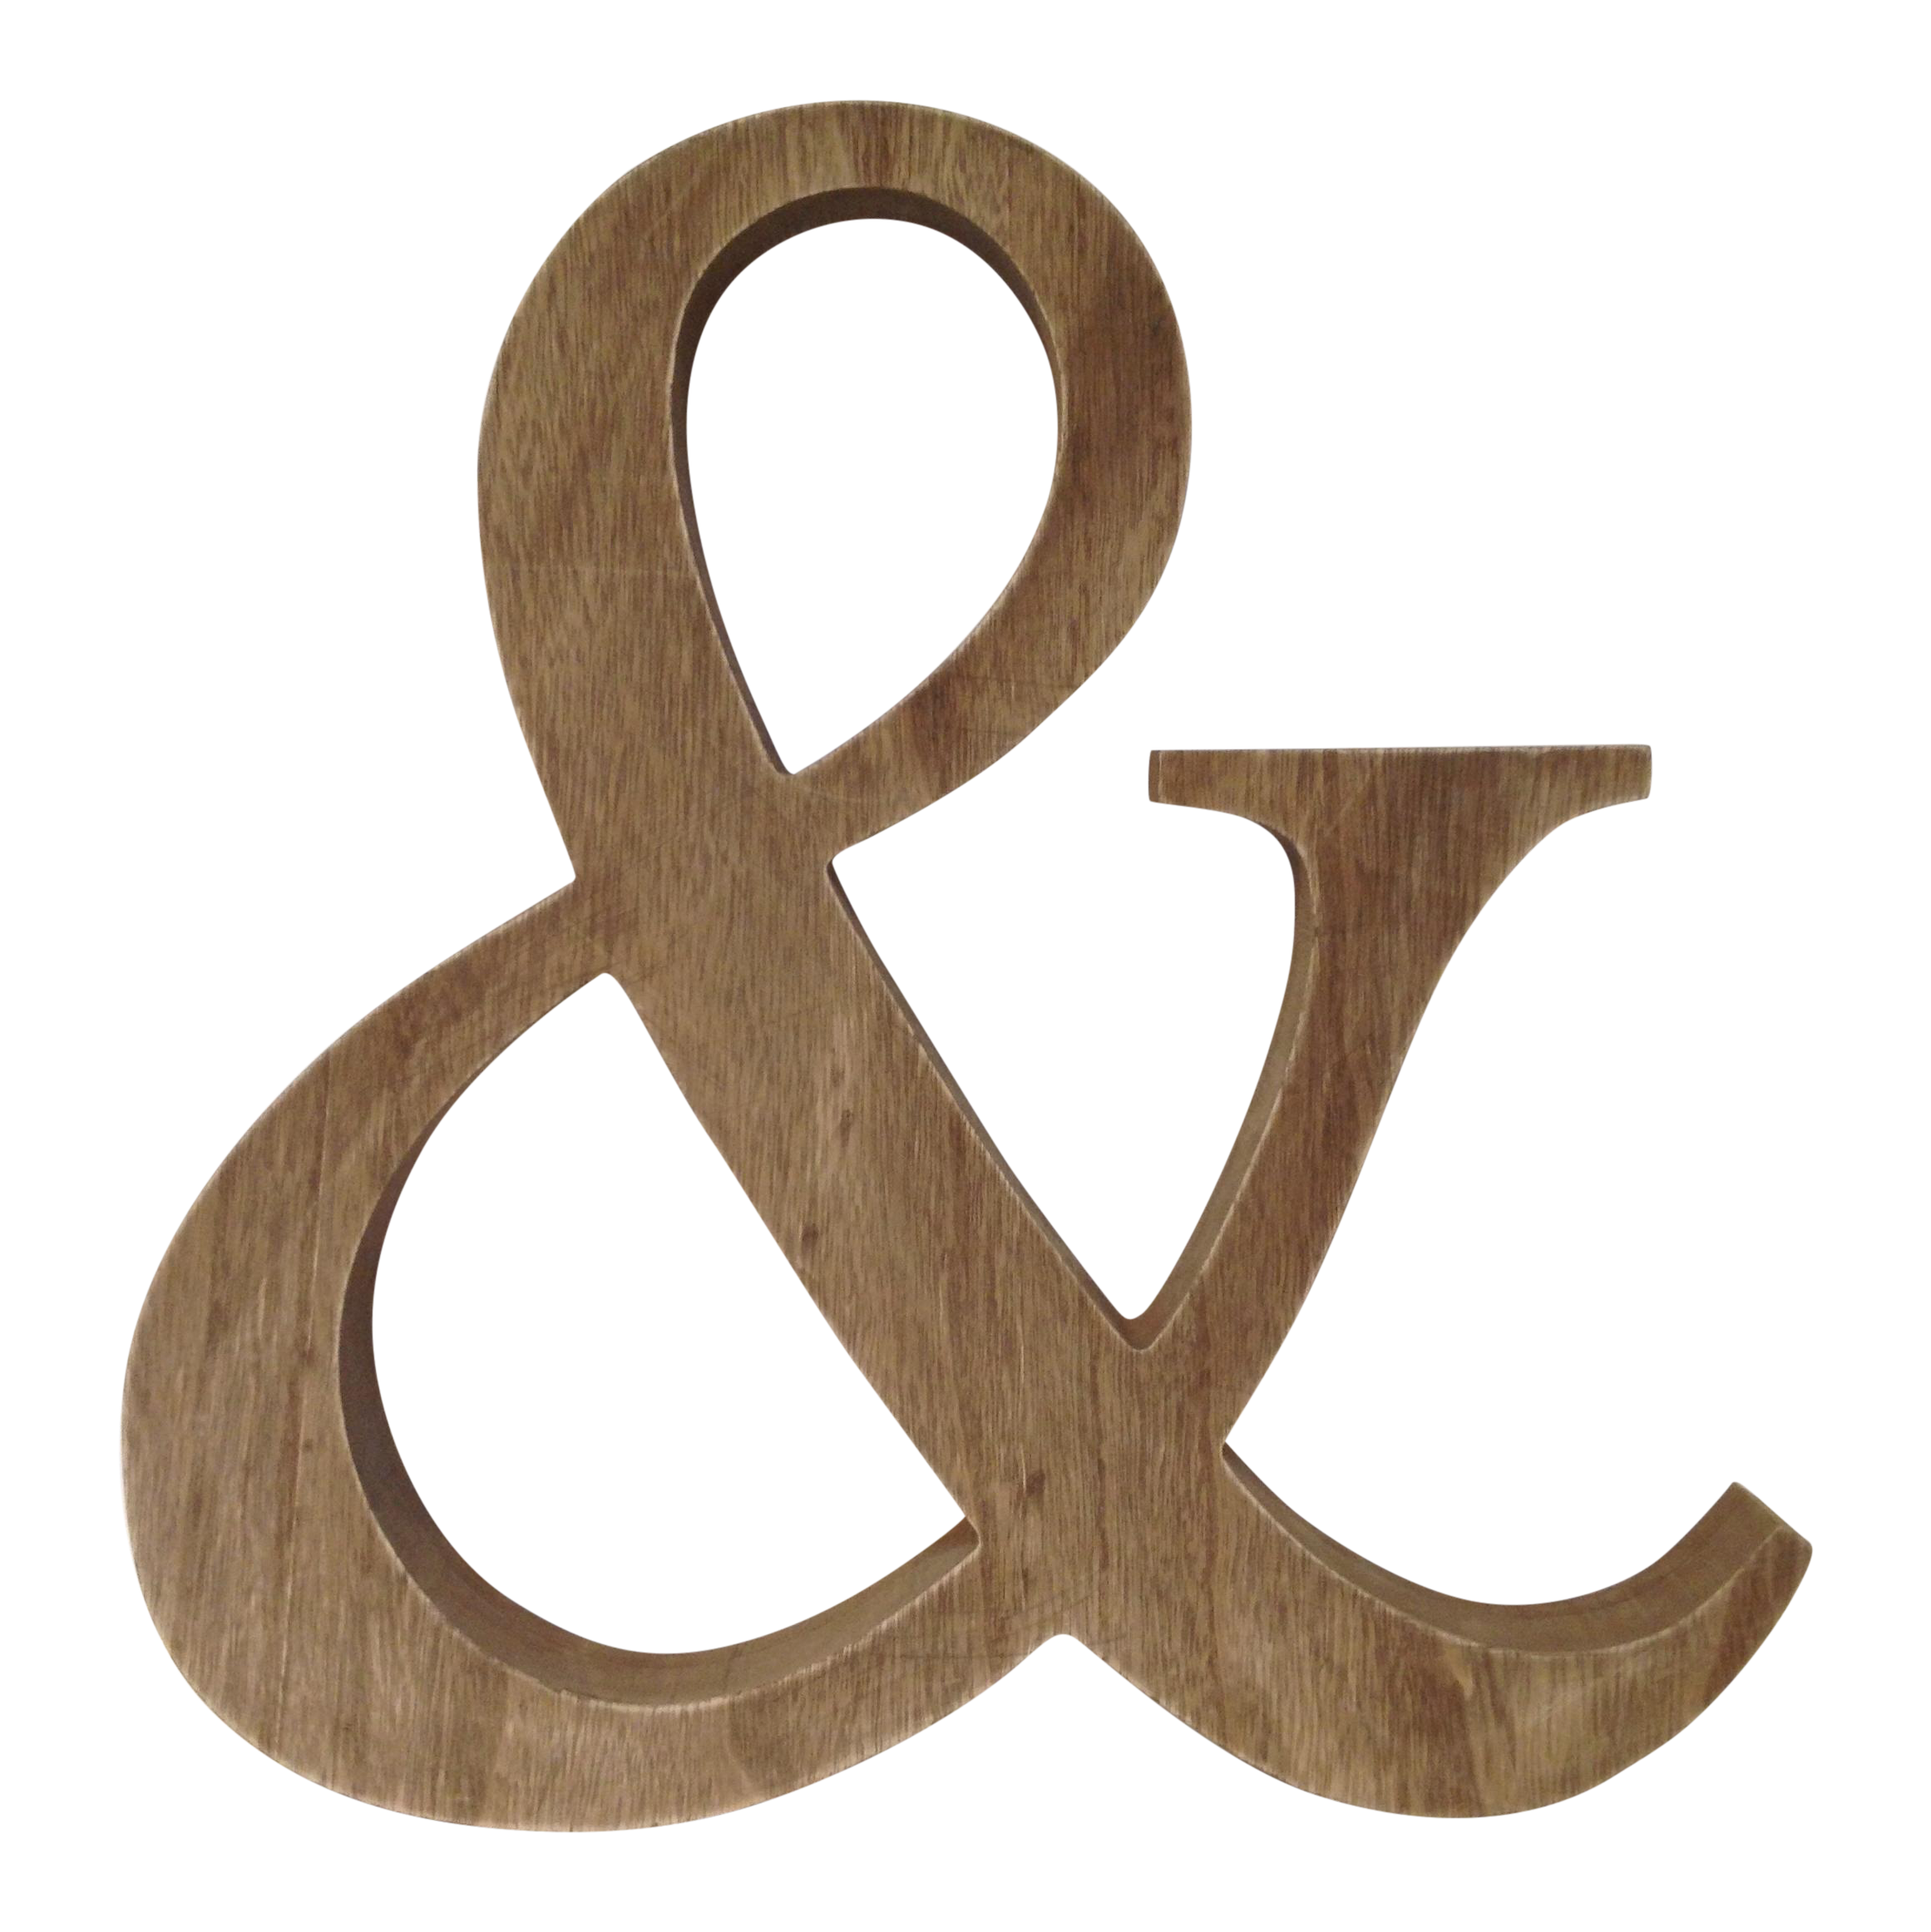 Ampersand sign png, Picture #378768 ampersand sign png